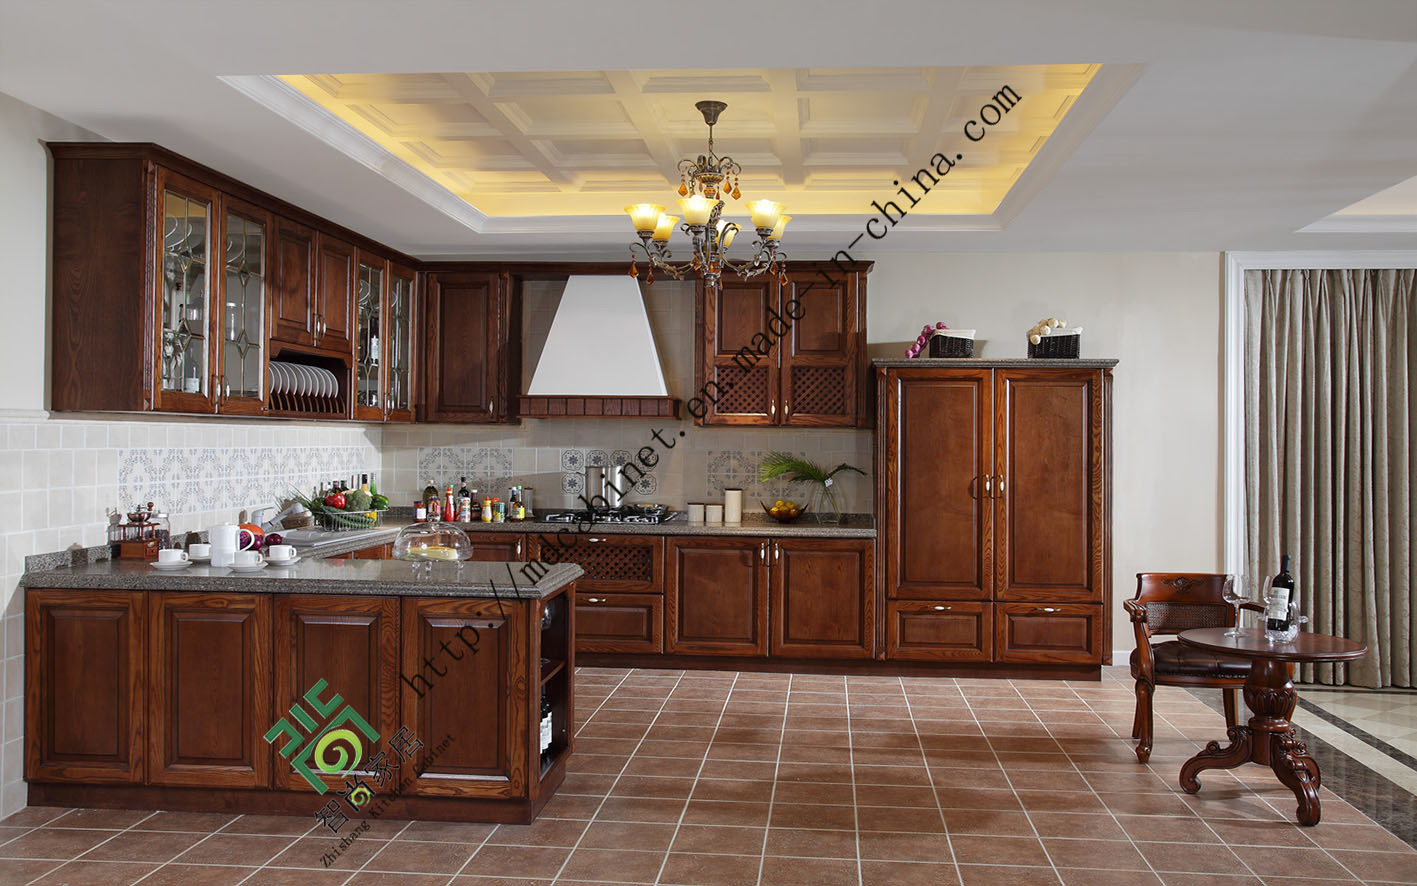 new style kitchen cabinets terraneg kitchen design